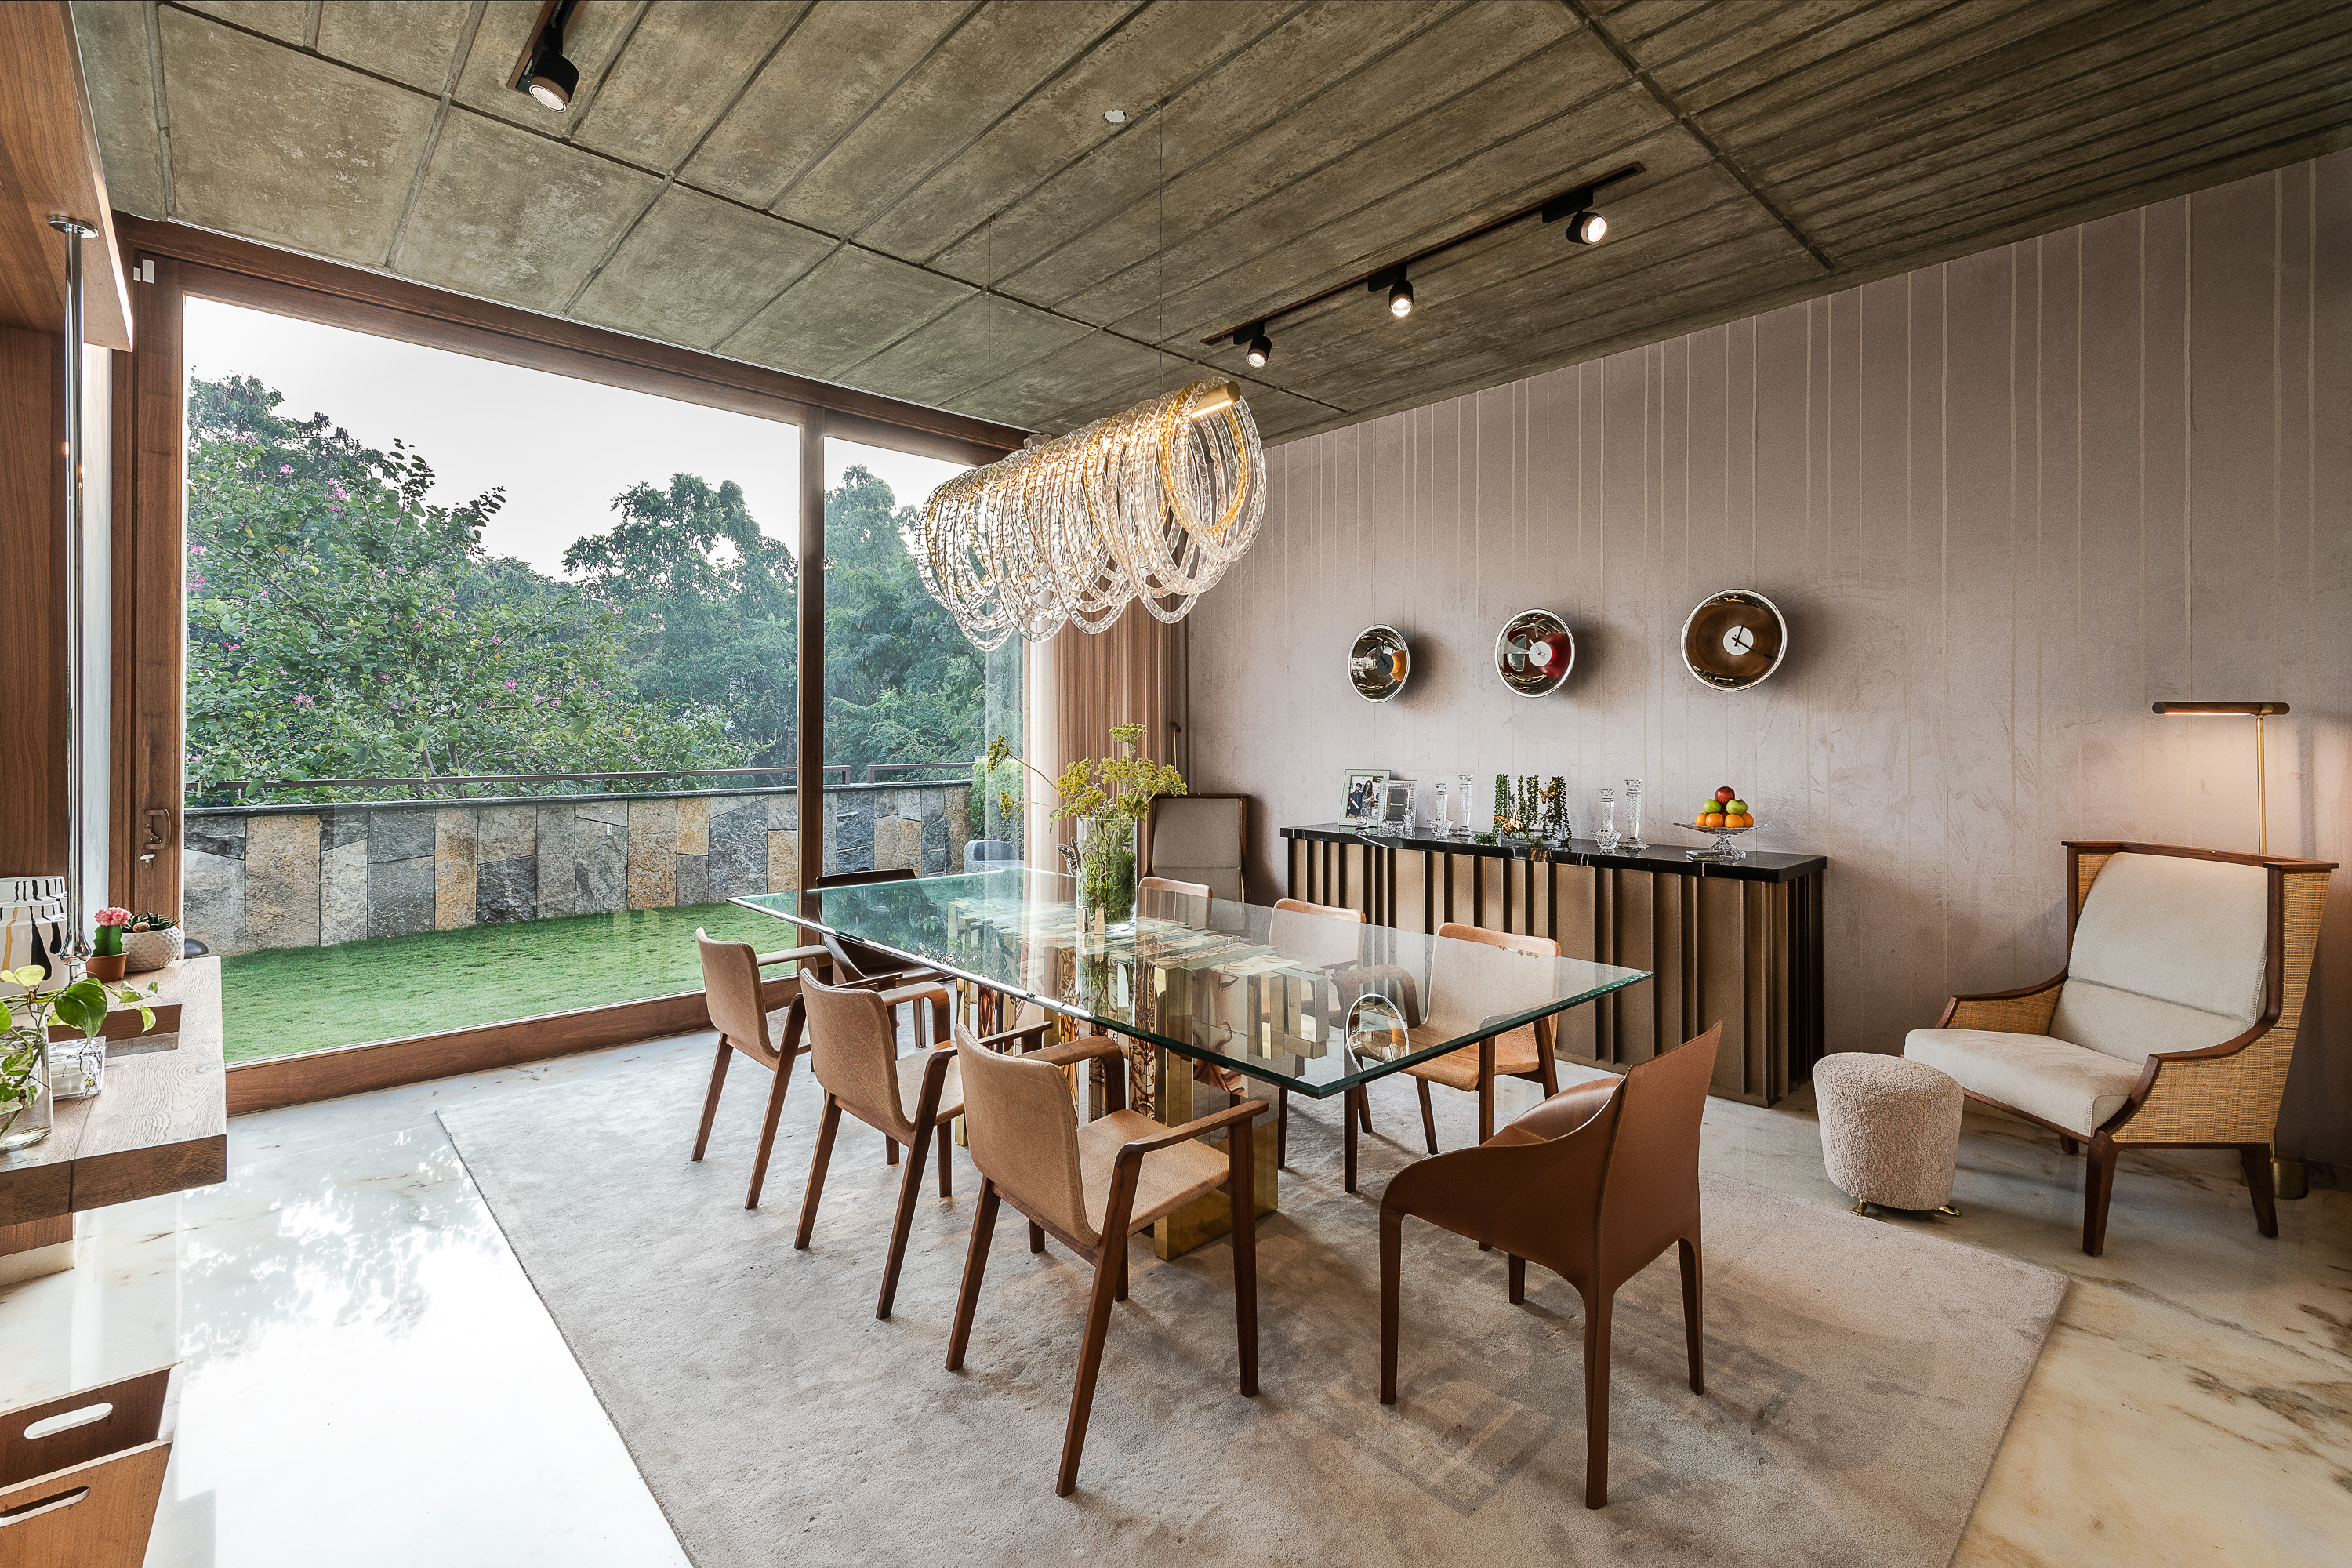 Sustainability Meets Luxury In This Private Residence by NA Architects (2) na architects Sustainability Meets Luxury In This Private Residence by NA Architects Sustainability Meets Luxury In This Private Residence by NA Architects 2